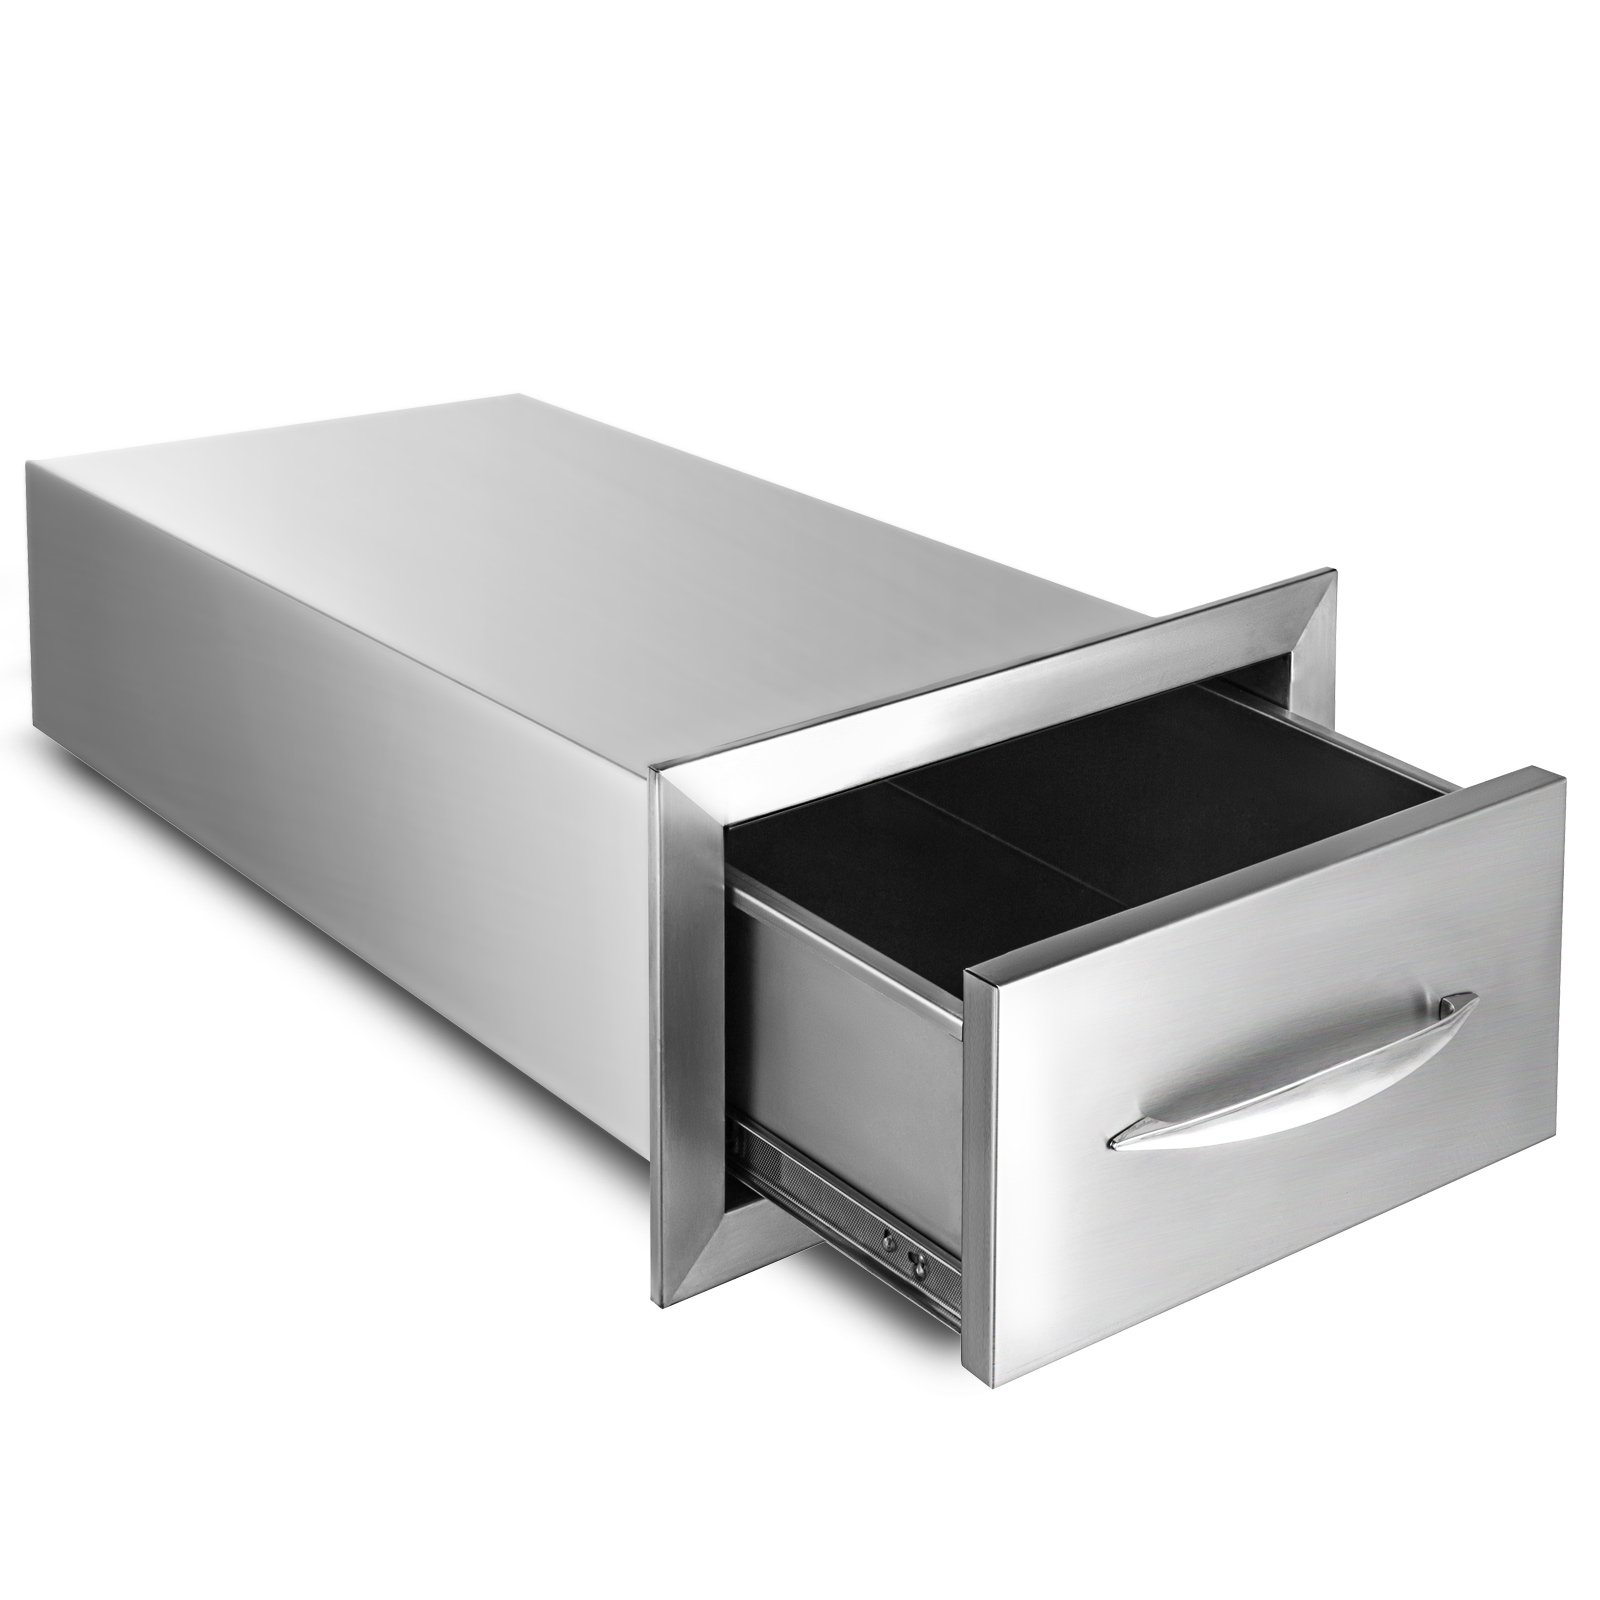 BestEquip 8.5x14 Inch Outdoor Kitchen Drawer Stainless Steel Single Access Drawer with Handle